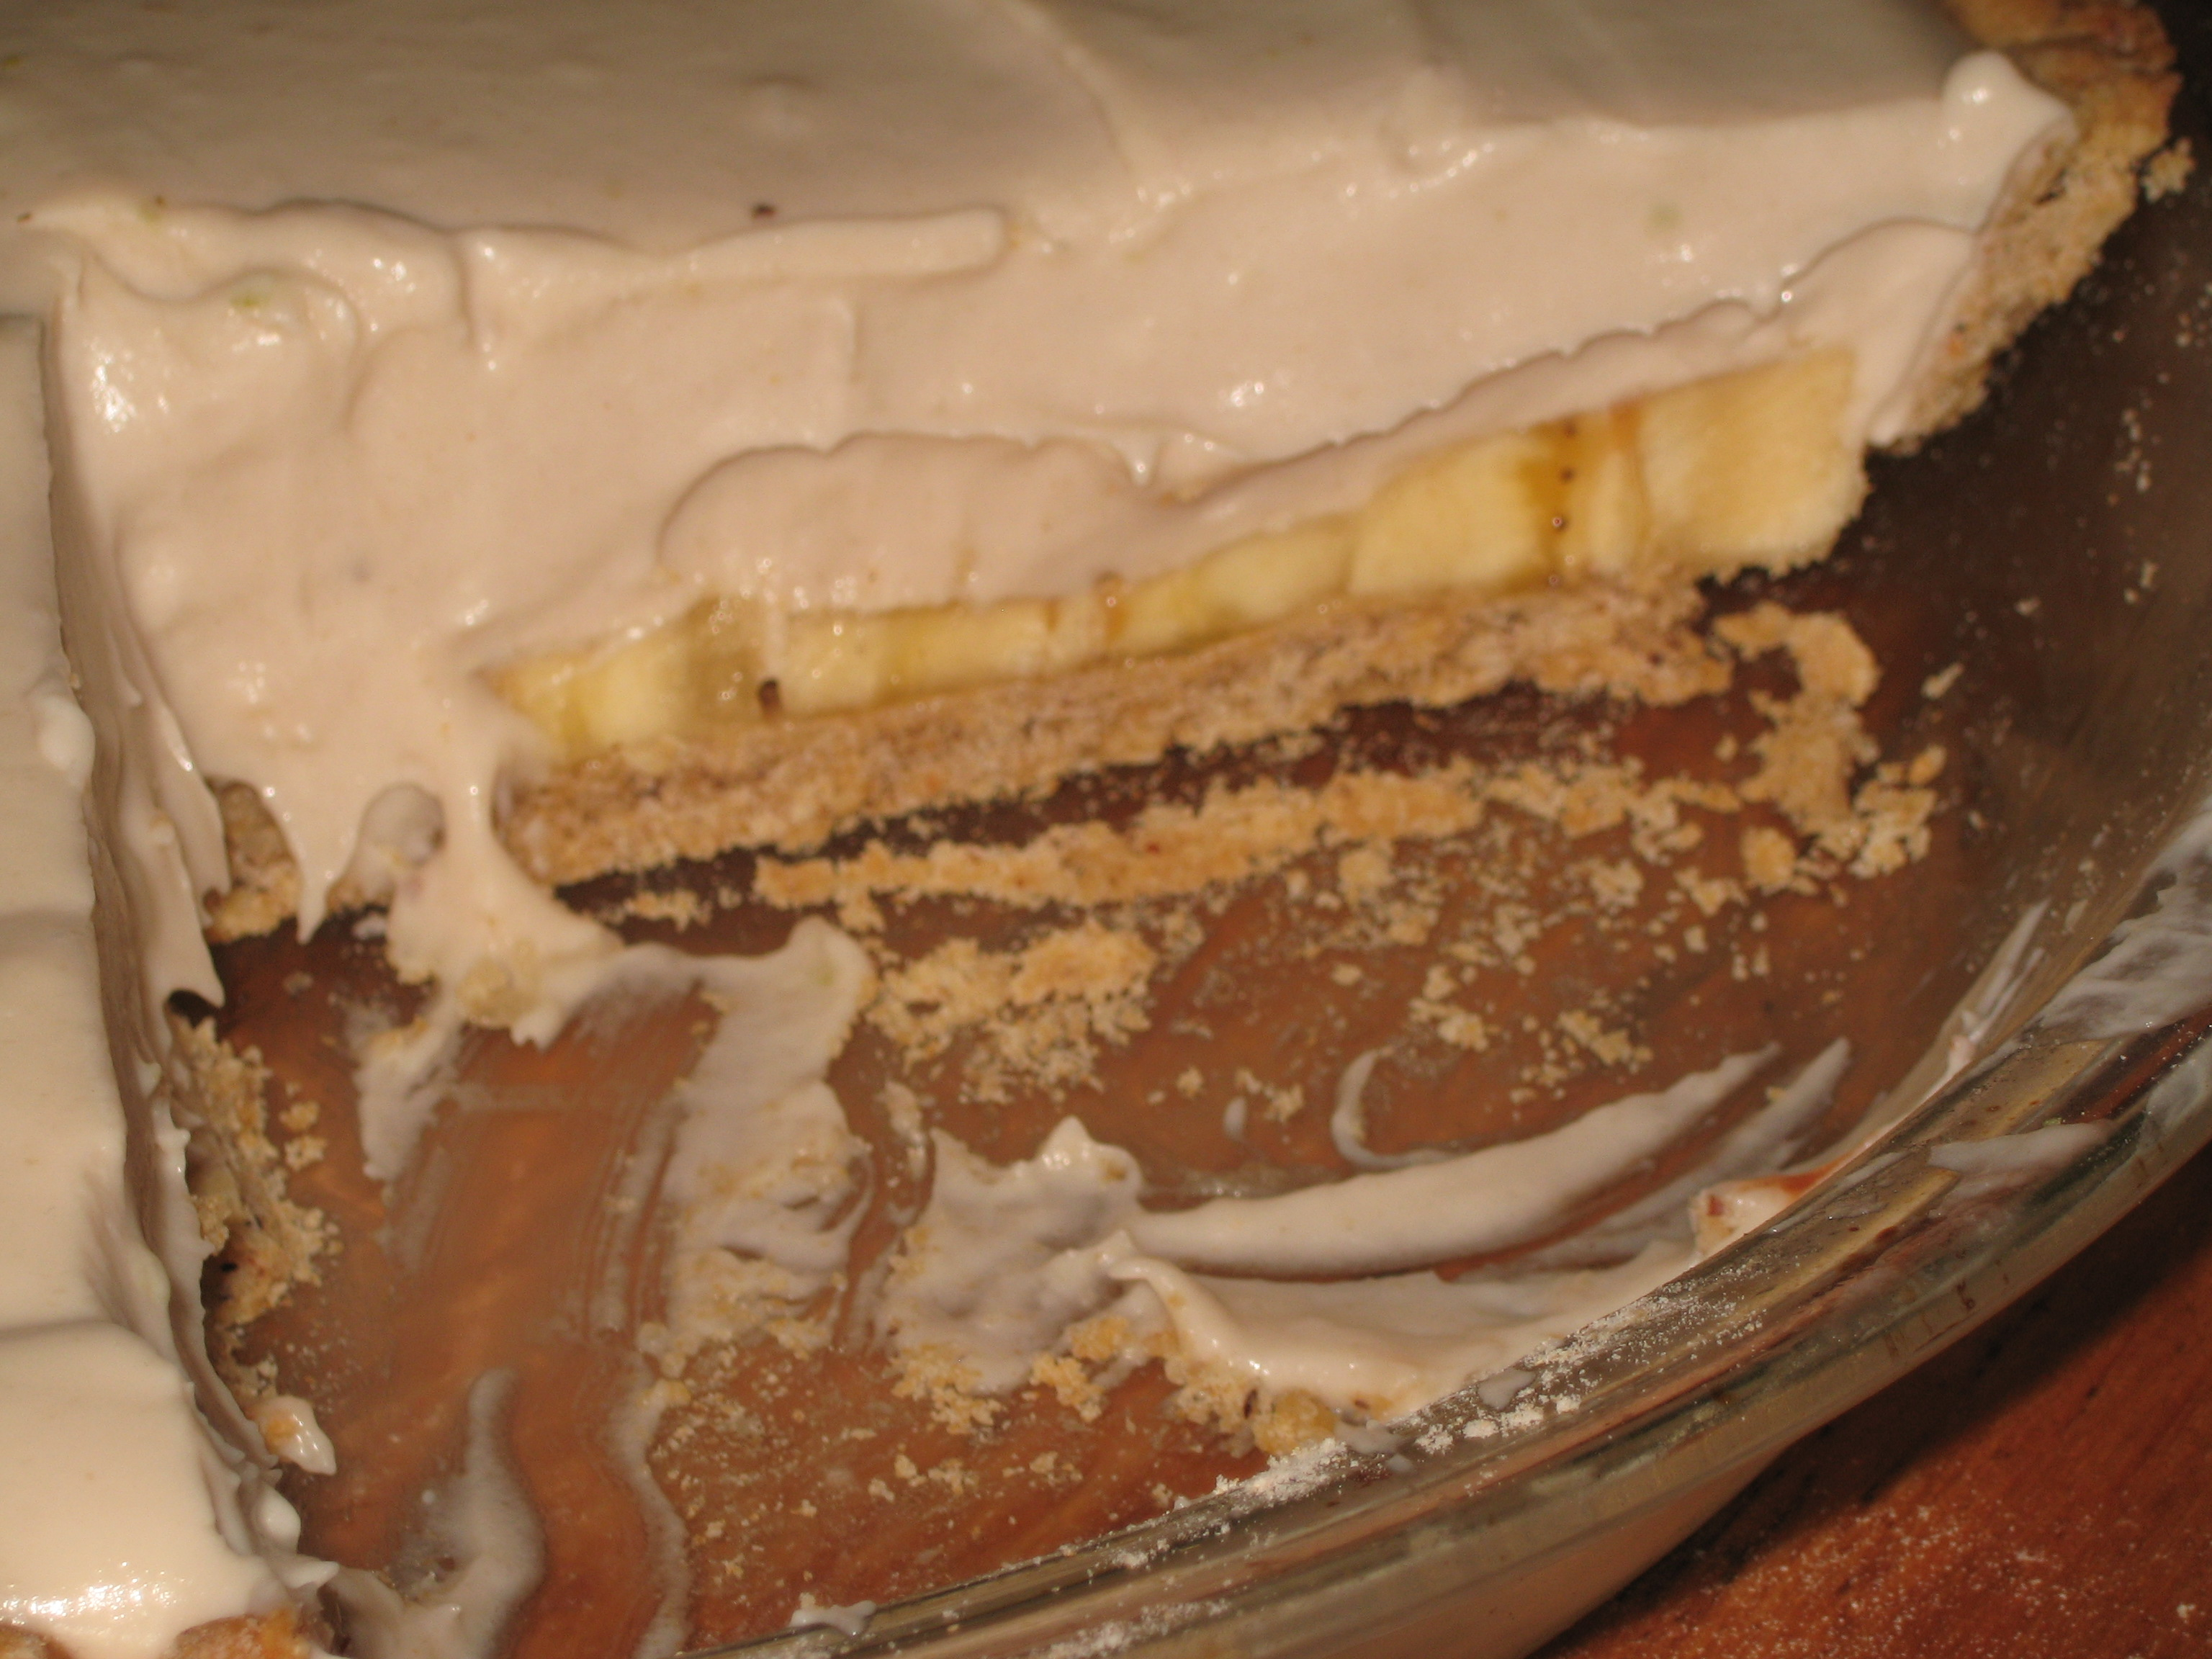 Half-Eaten Banana Cream Pie